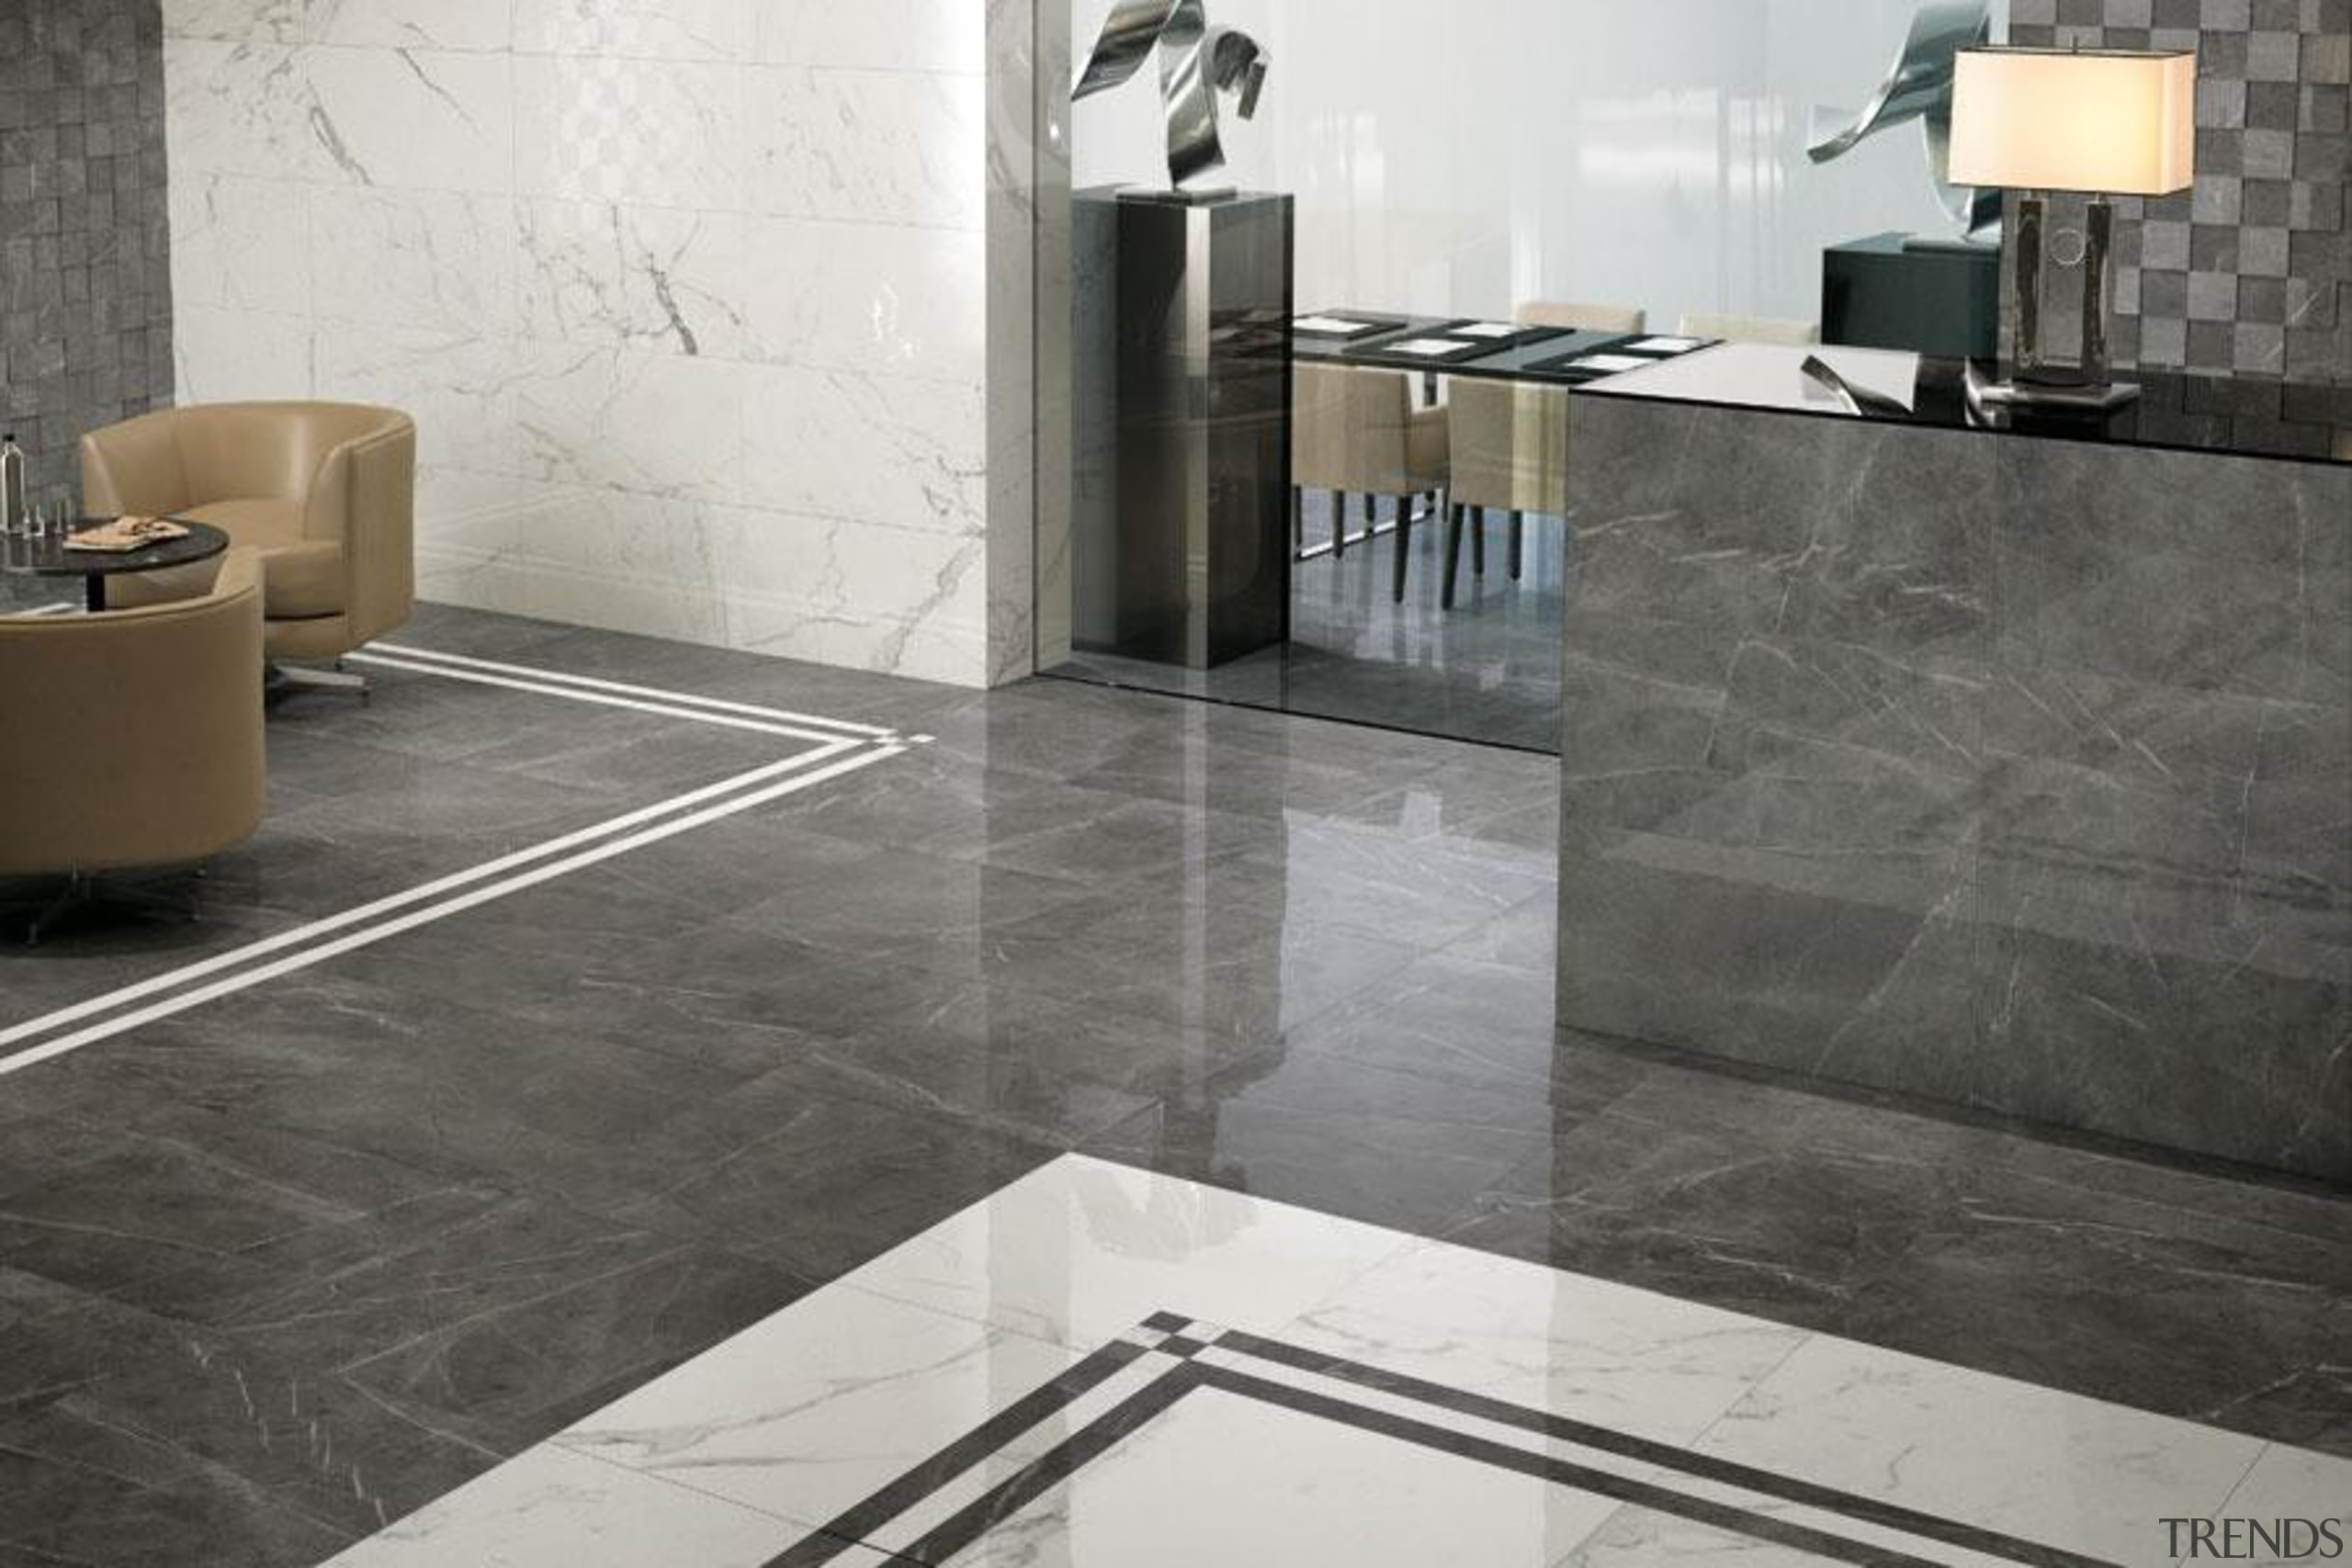 Calacatta and grey stone wall and floor tiles floor, flooring, interior design, product design, tap, tile, wall, gray, white